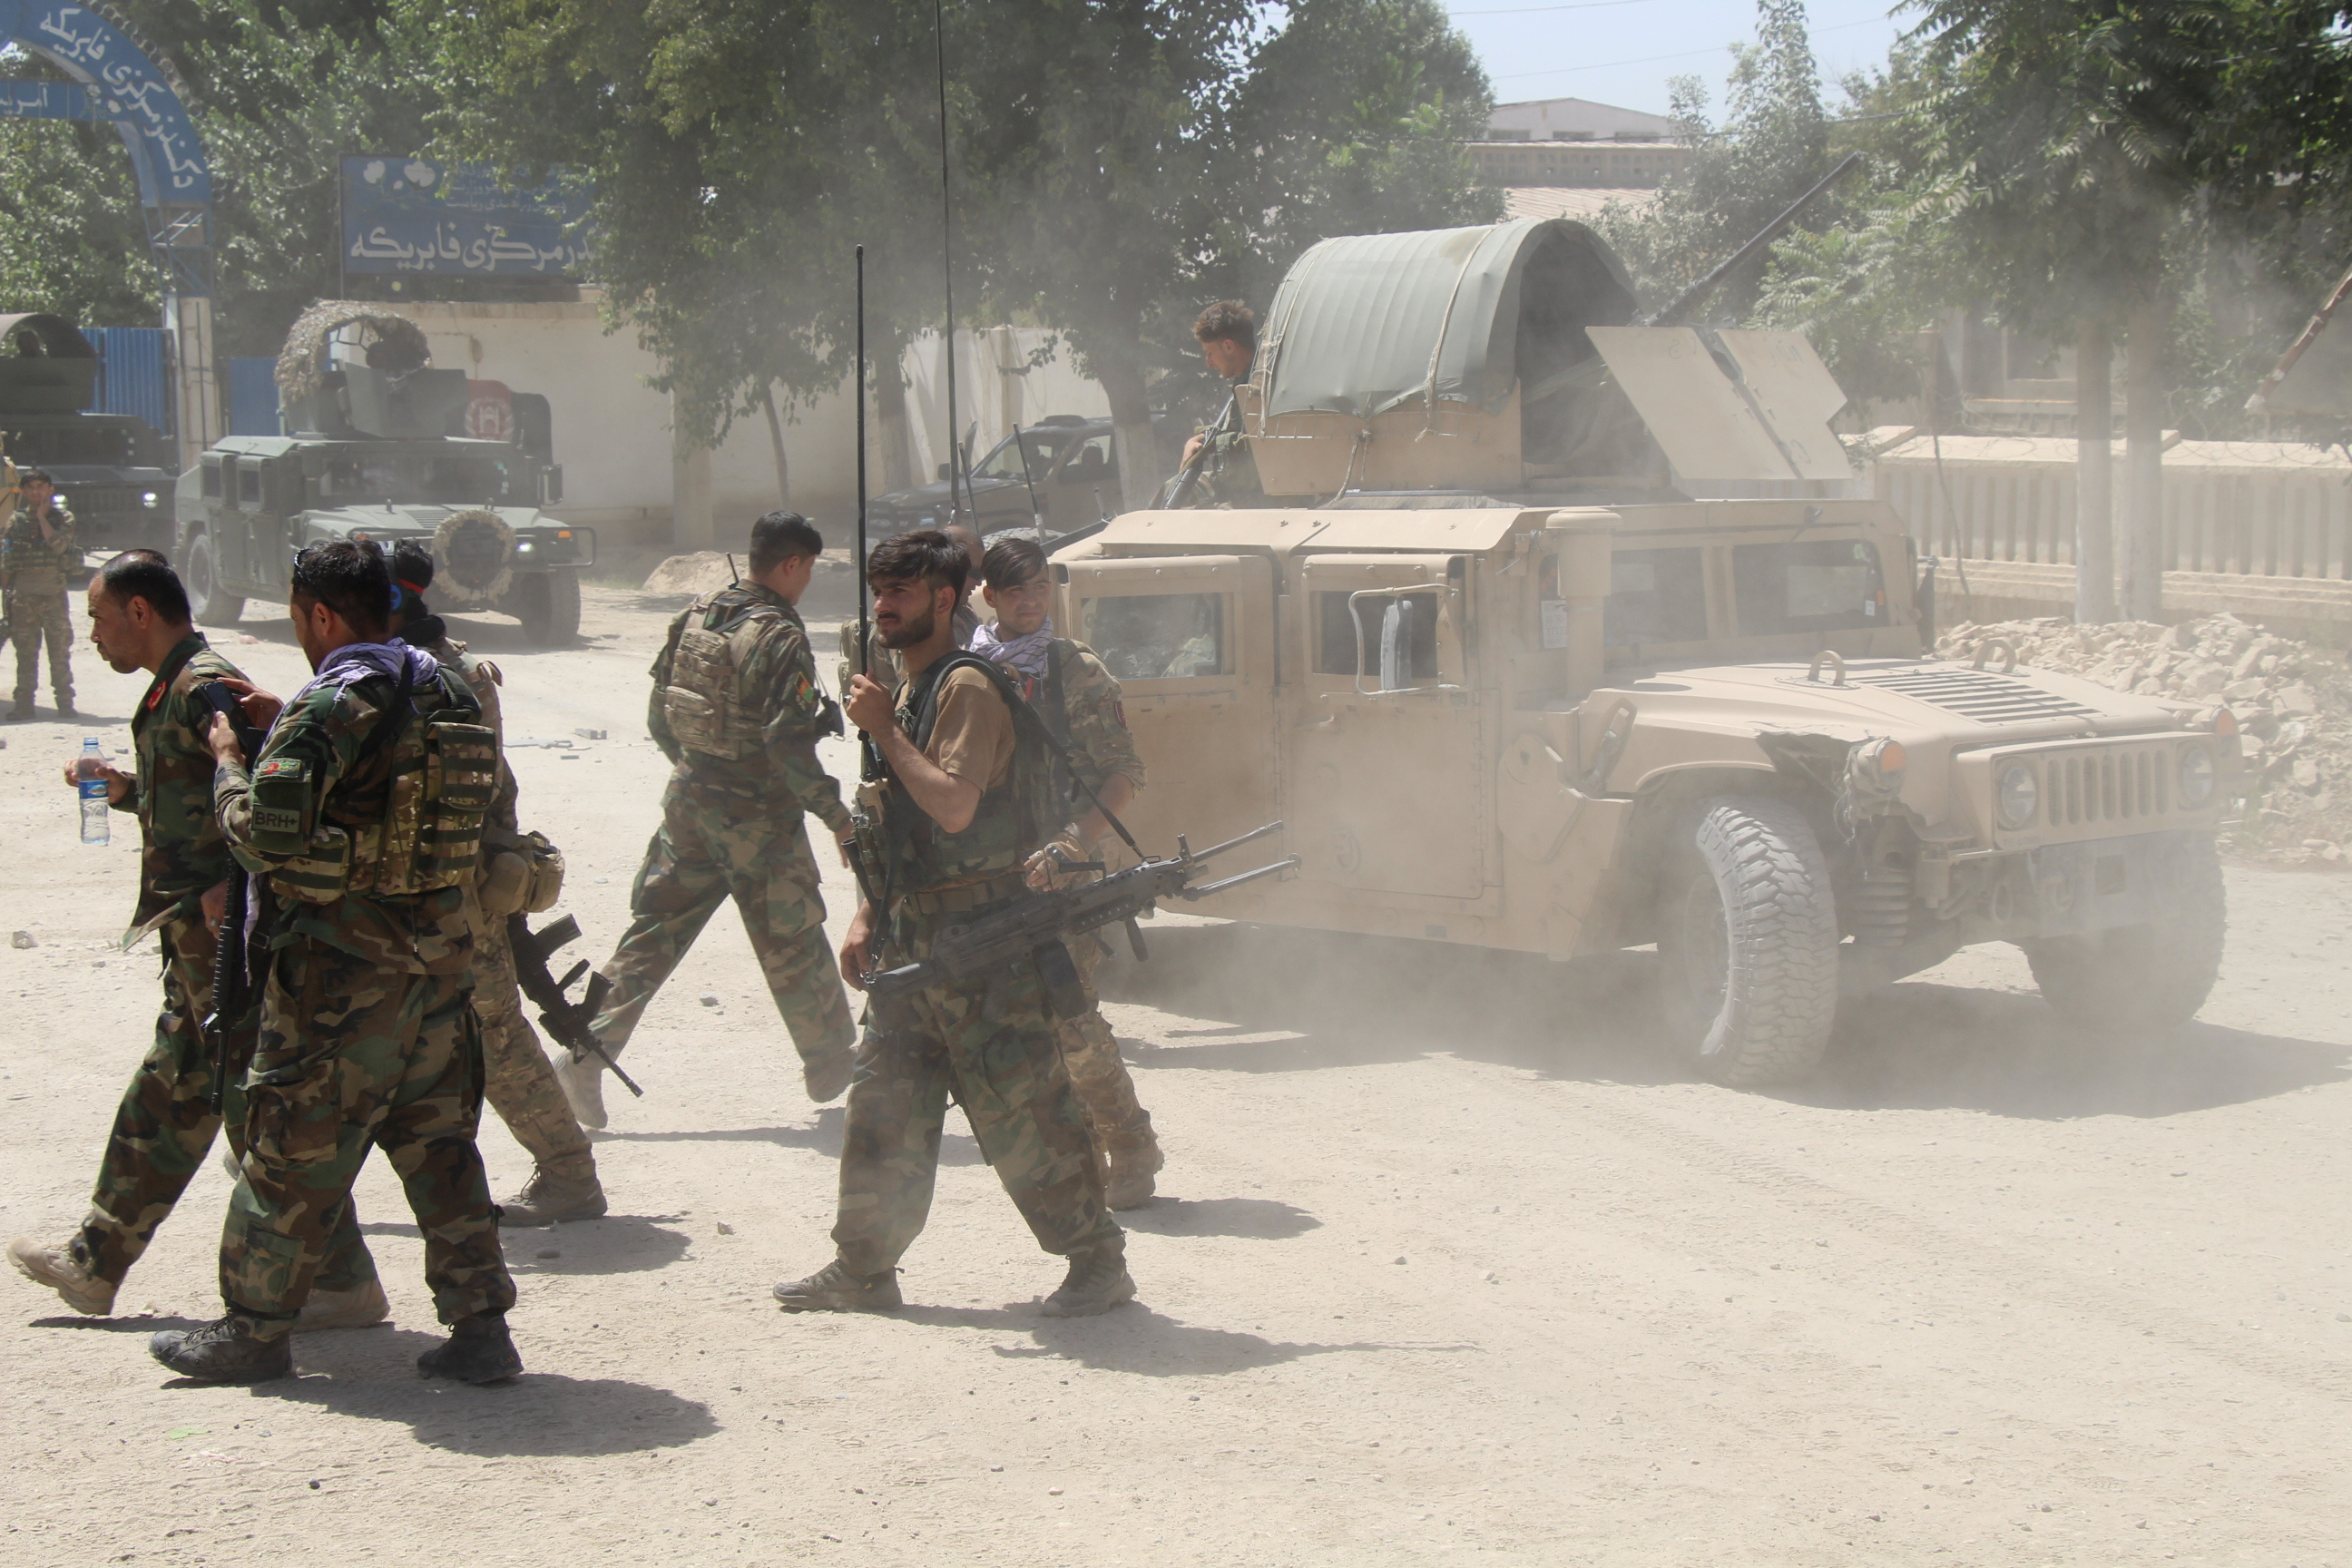 Afghan Commando forces are seen at the site of a battle field where they clash with the Taliban insurgent in Kunduz province, Afghanistan June 22, 2021. REUTERS/Stringer